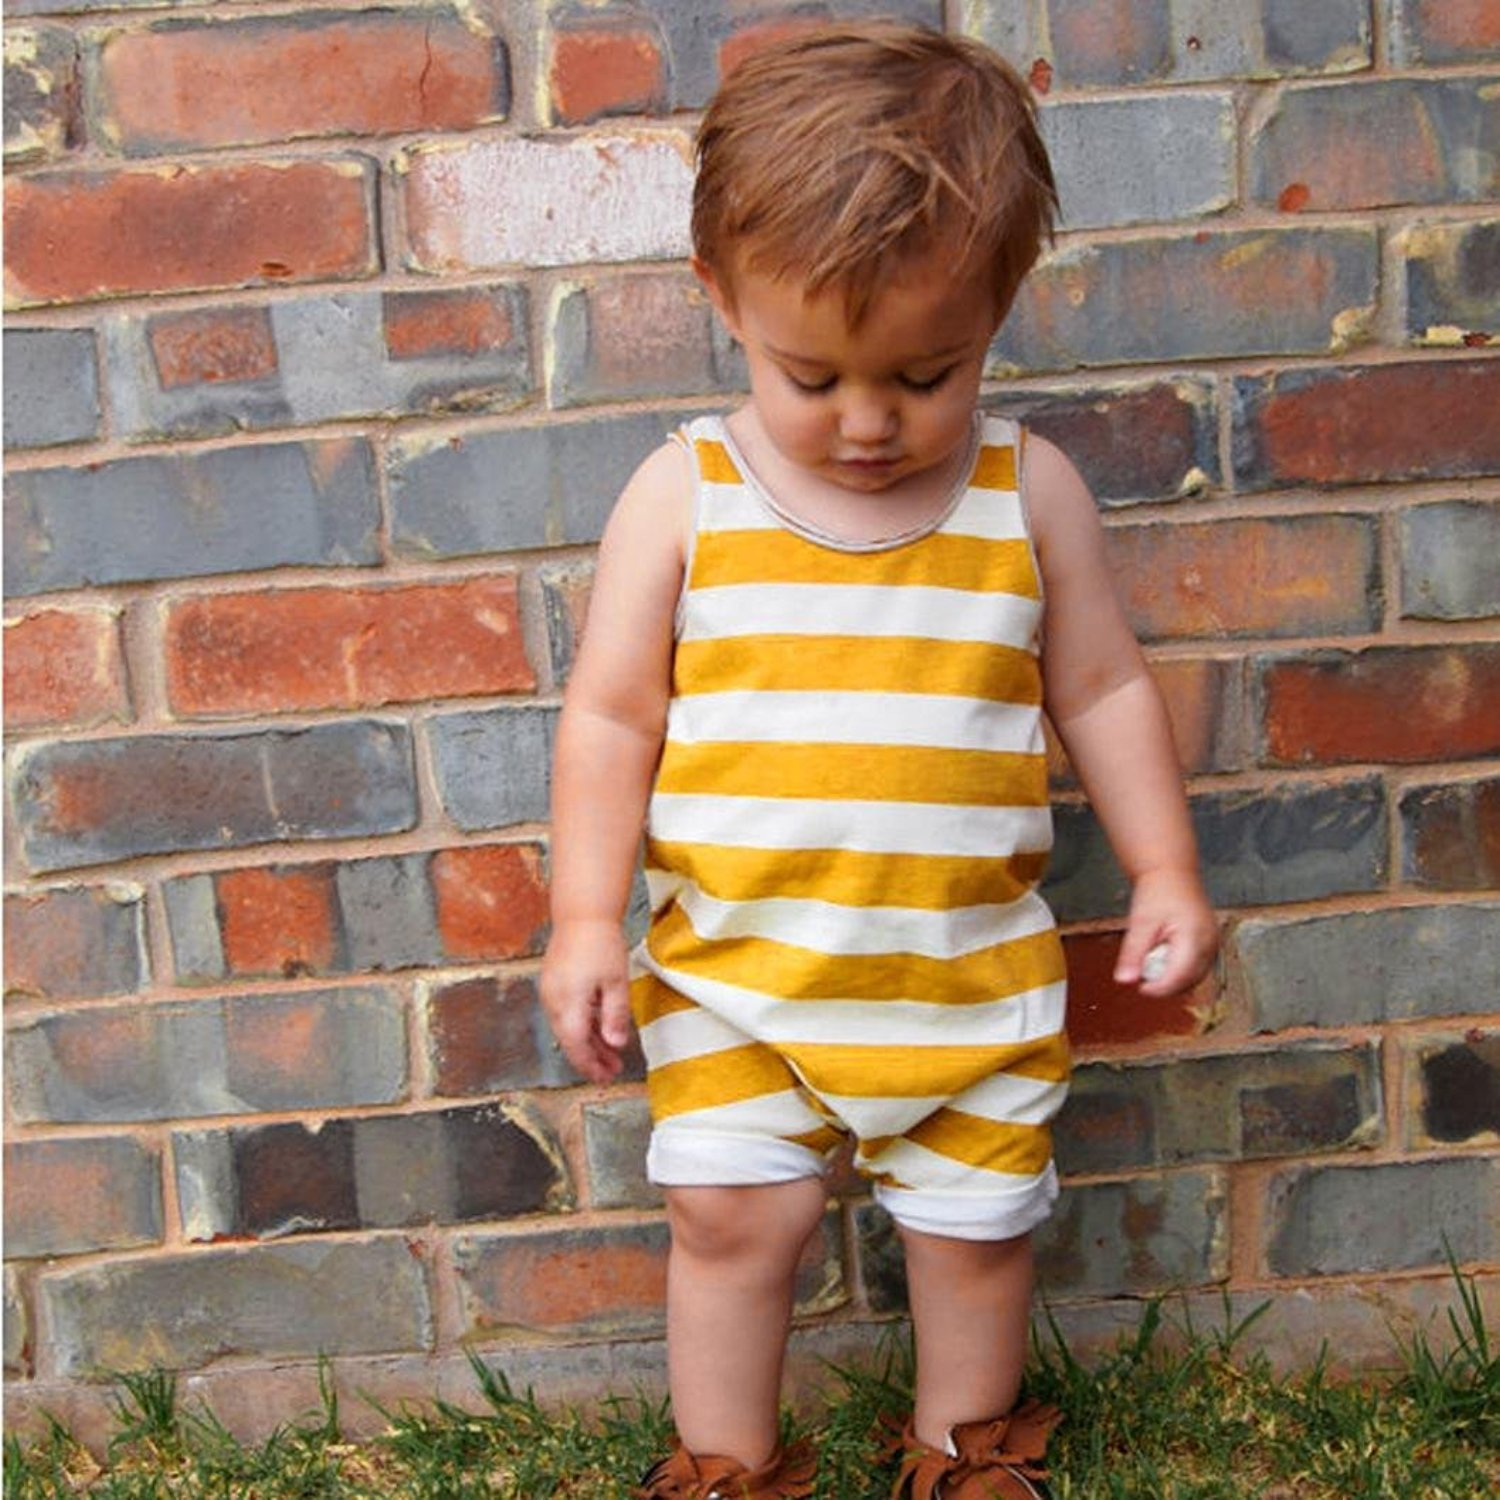 YOUNGER TREE Infant Toddler Baby Boys Girls Romper Sleeveless Yellow Stripe Print Jumpsuit Outfit Clothes